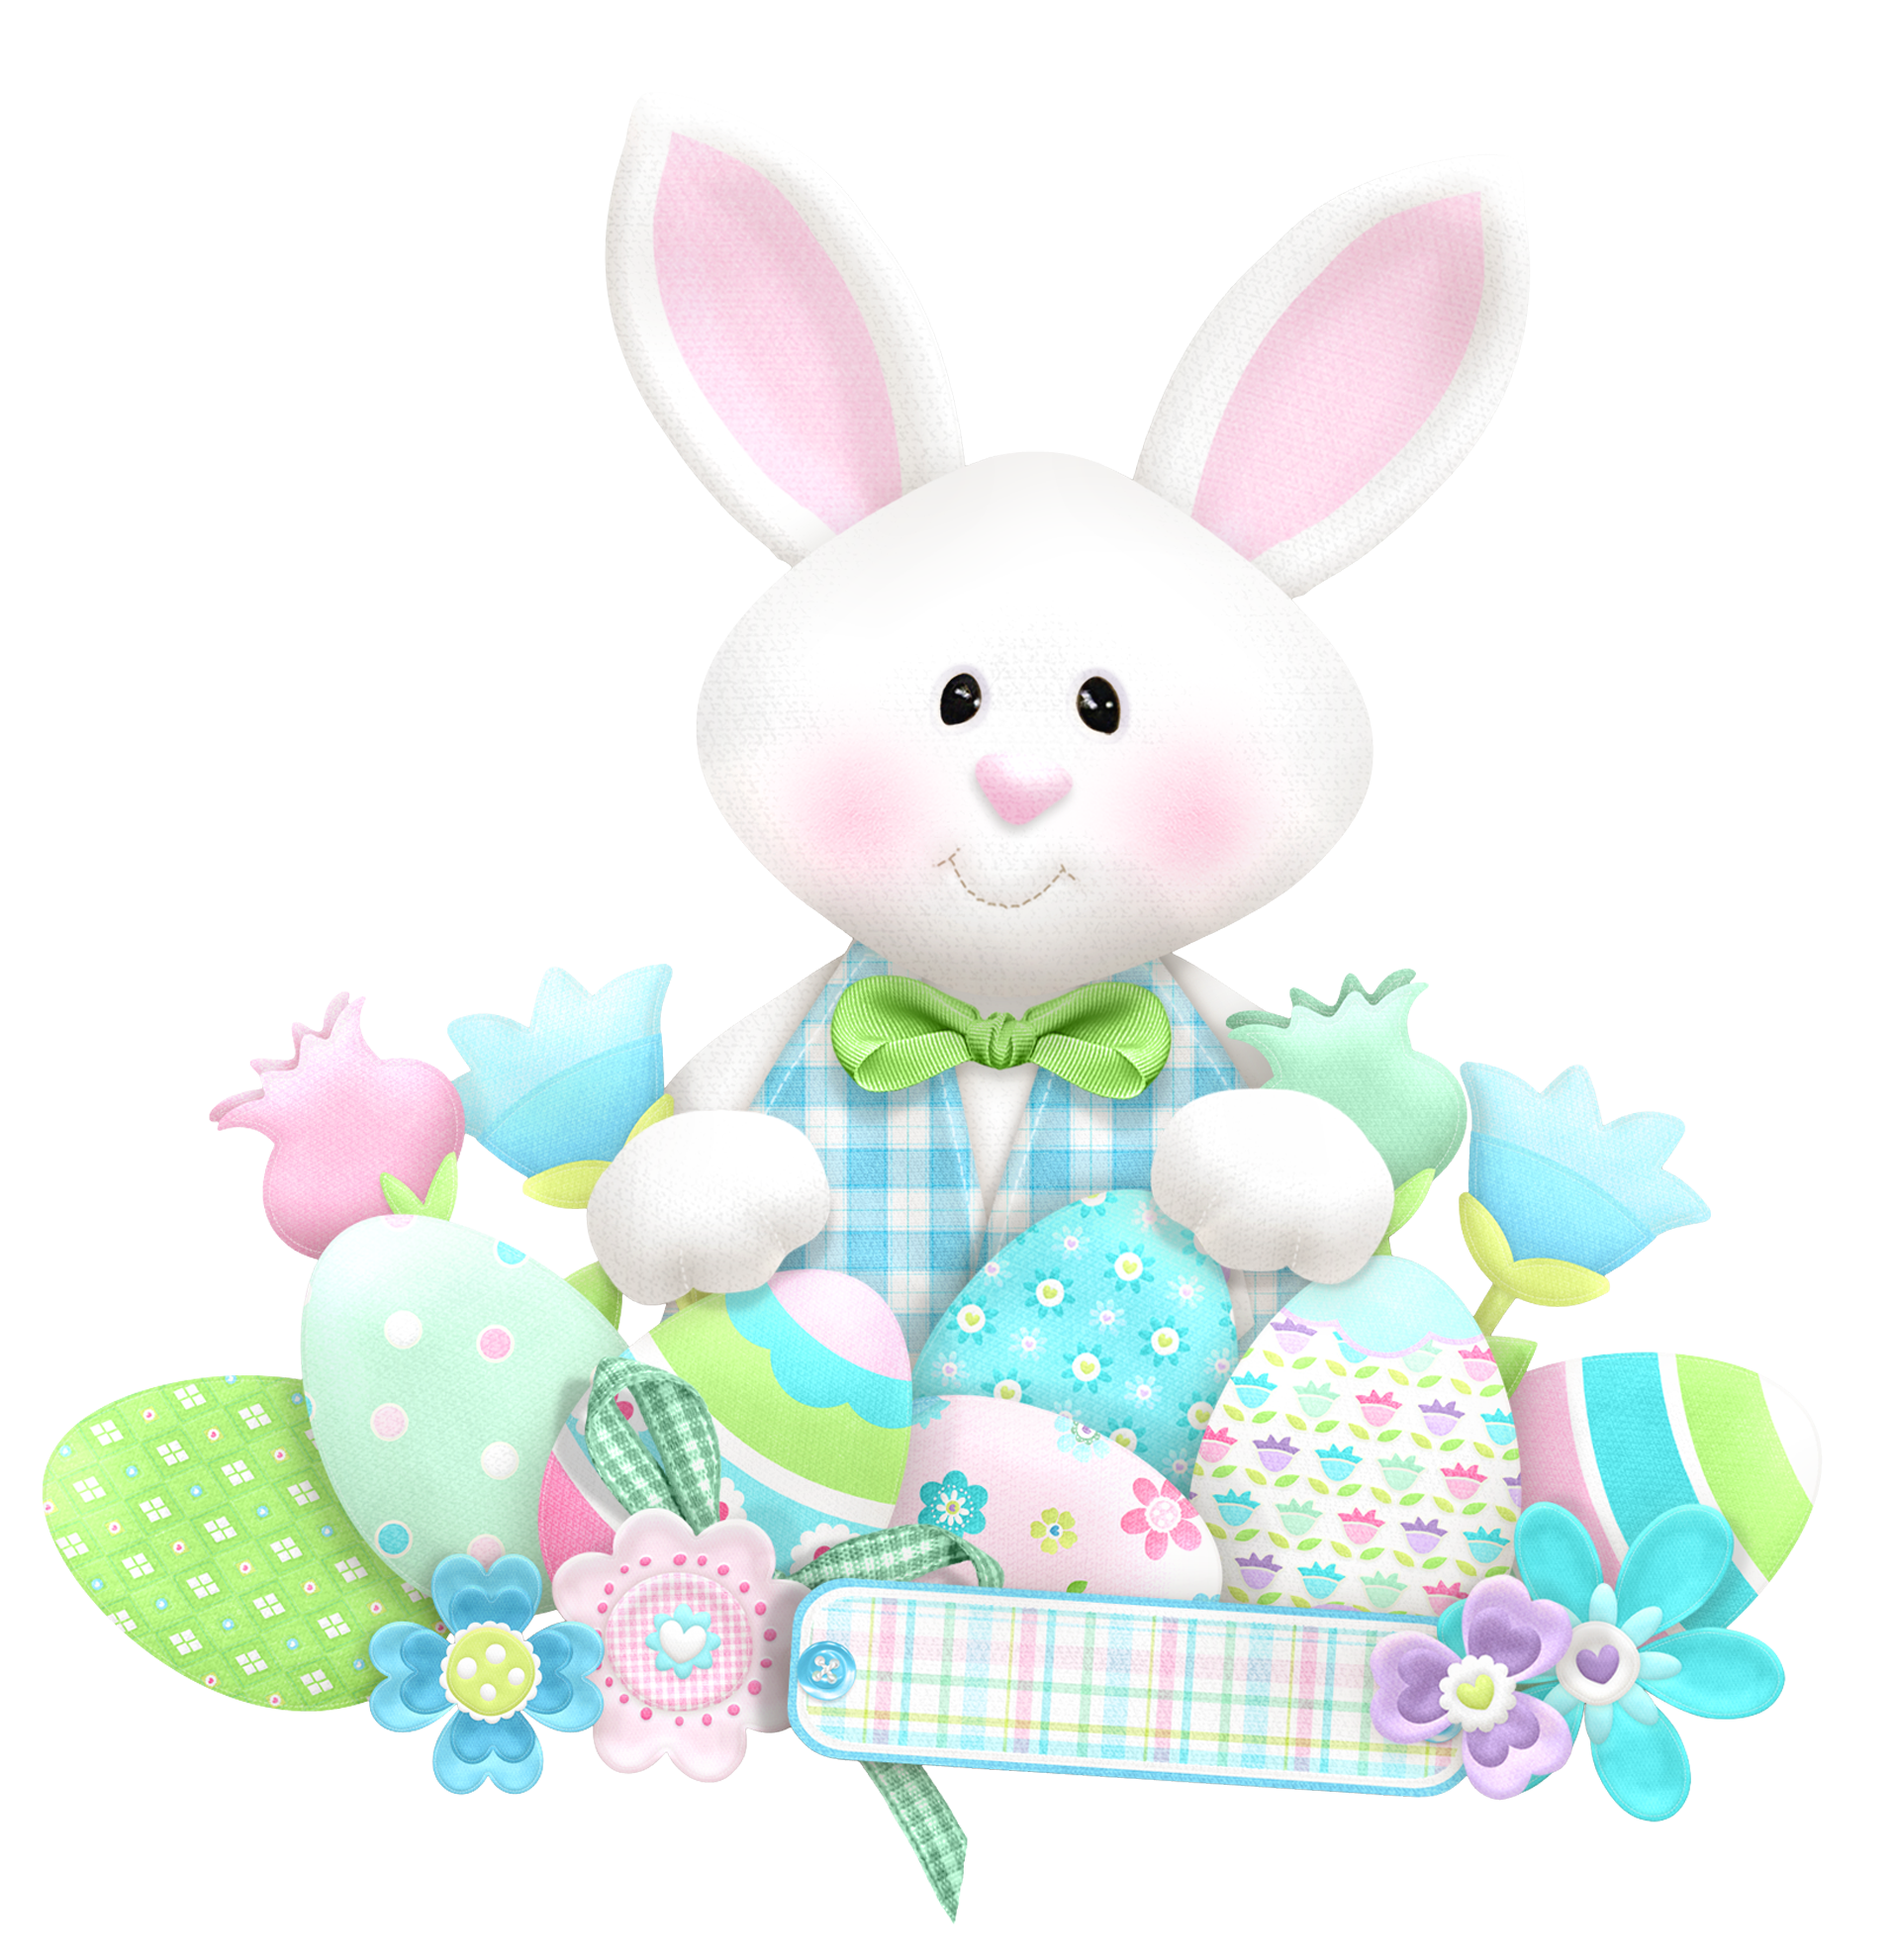 Easter cute with eggs. Clipart grass bunny